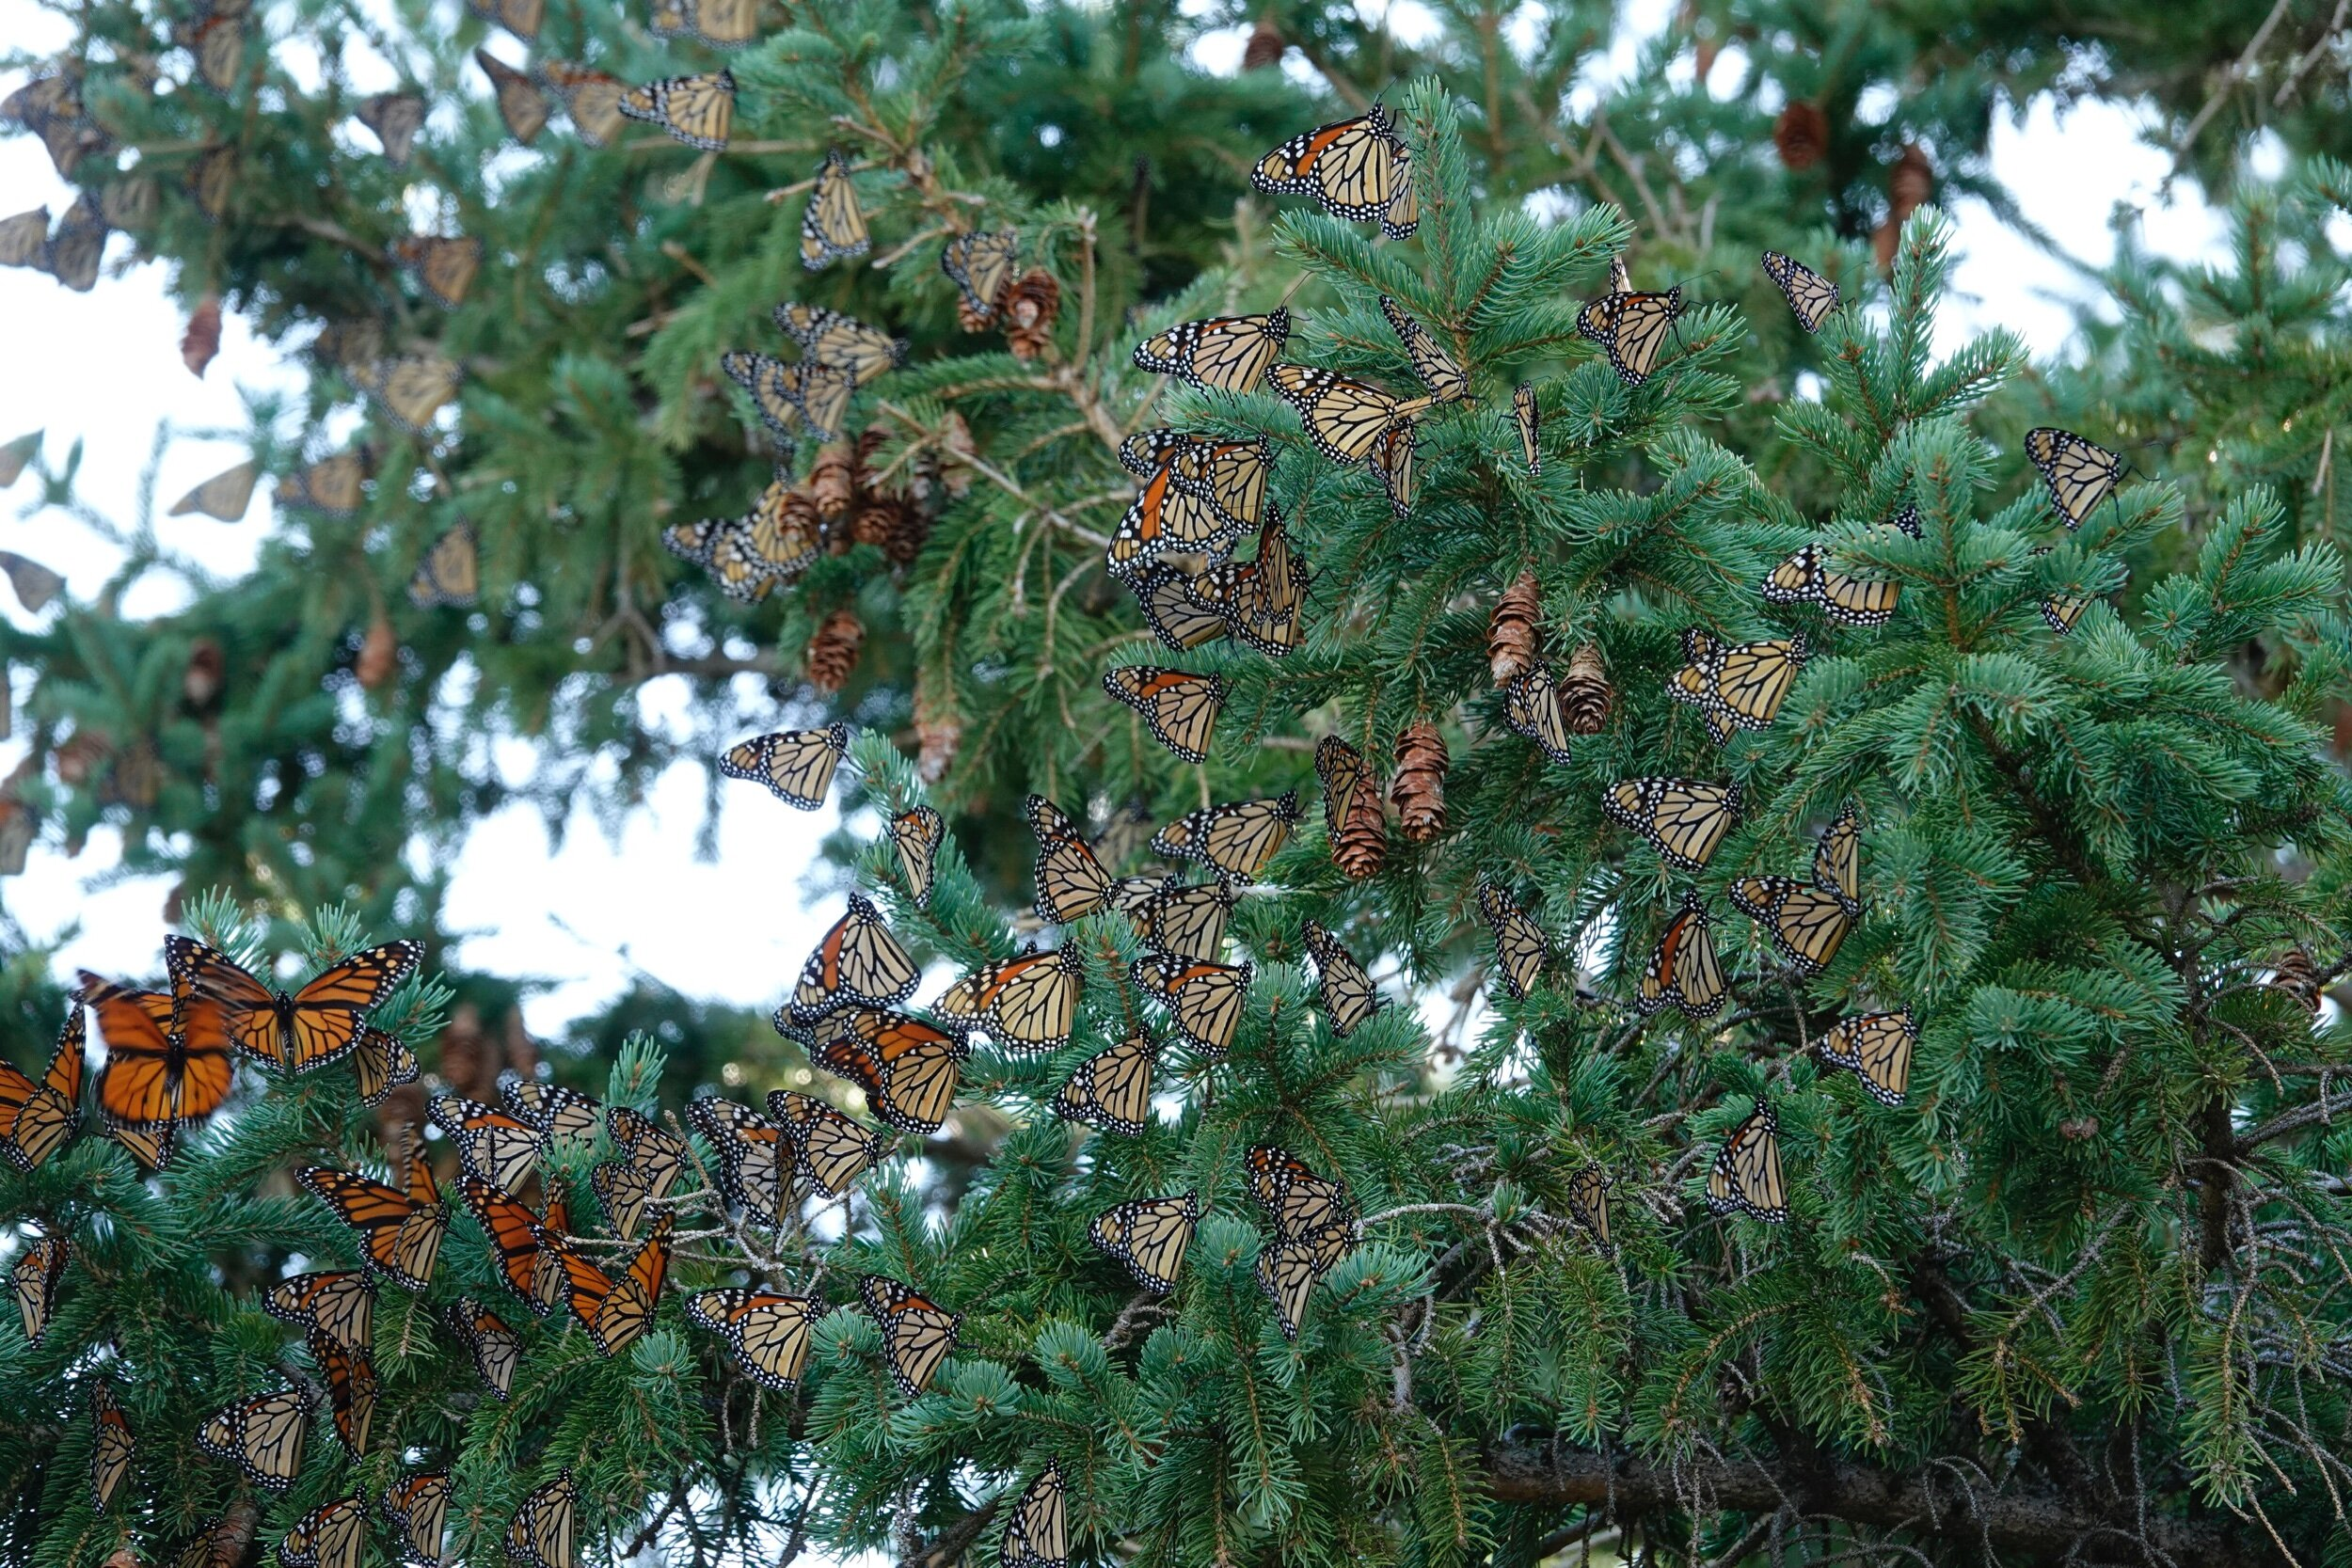 It takes only one monarch butterfly to make a roost.